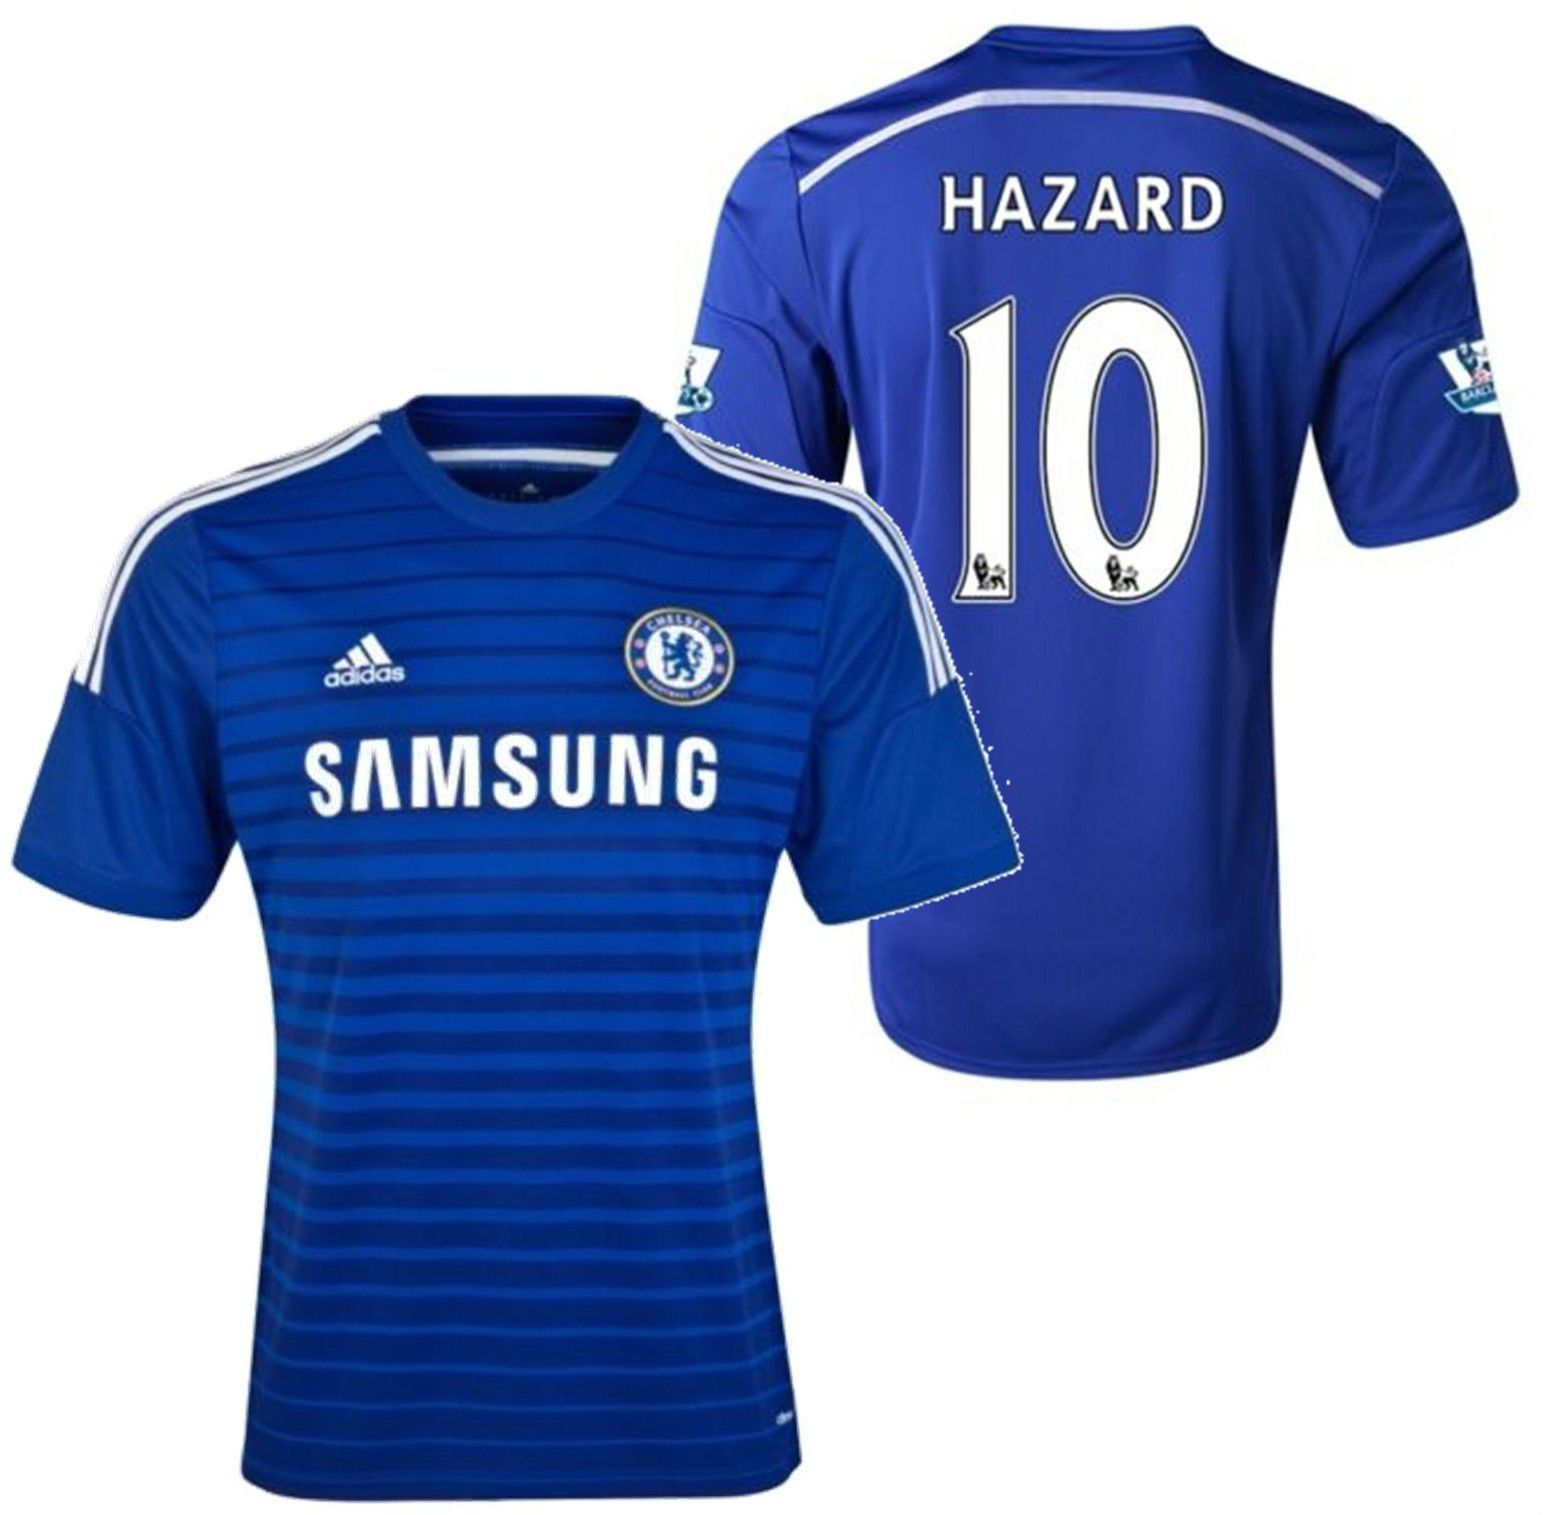 factory authentic 00004 991d0 ADIDAS EDEN HAZARD CHELSEA FC HOME JERSEY 2014/15 | Products ...